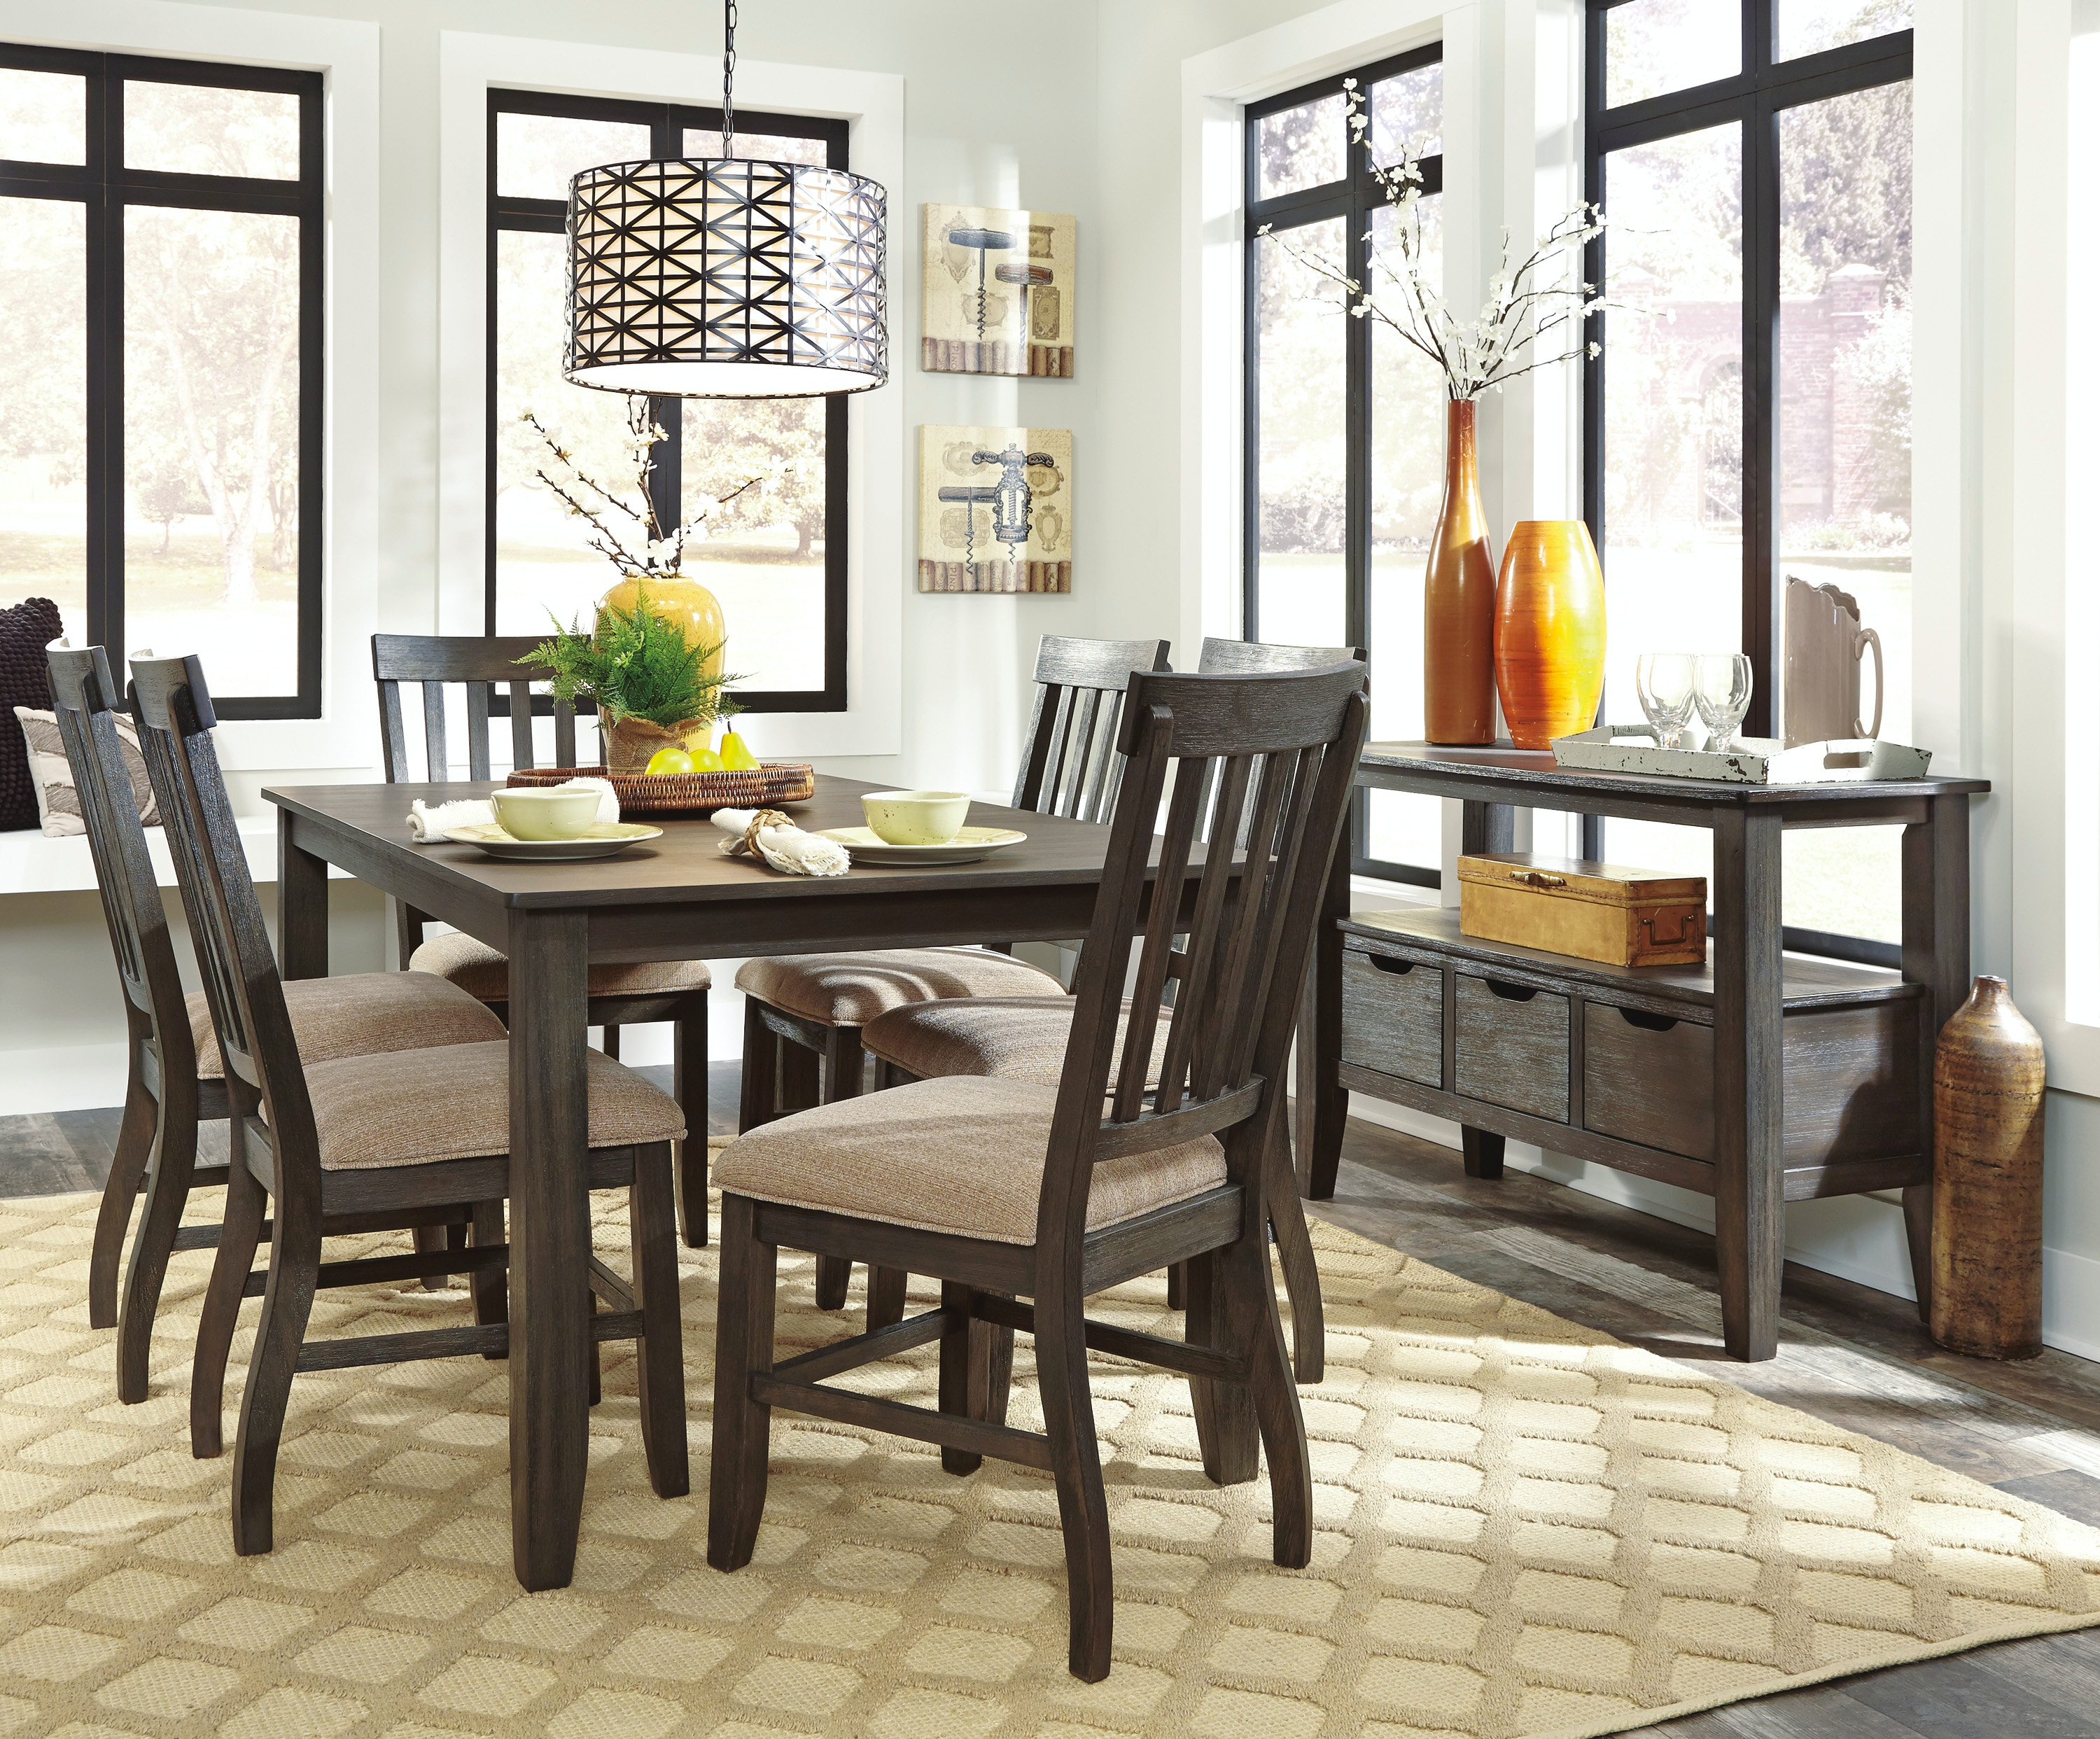 Ashley Dresbar 7pc Pub Dining Room Set D485 Tbl/6 Chairs